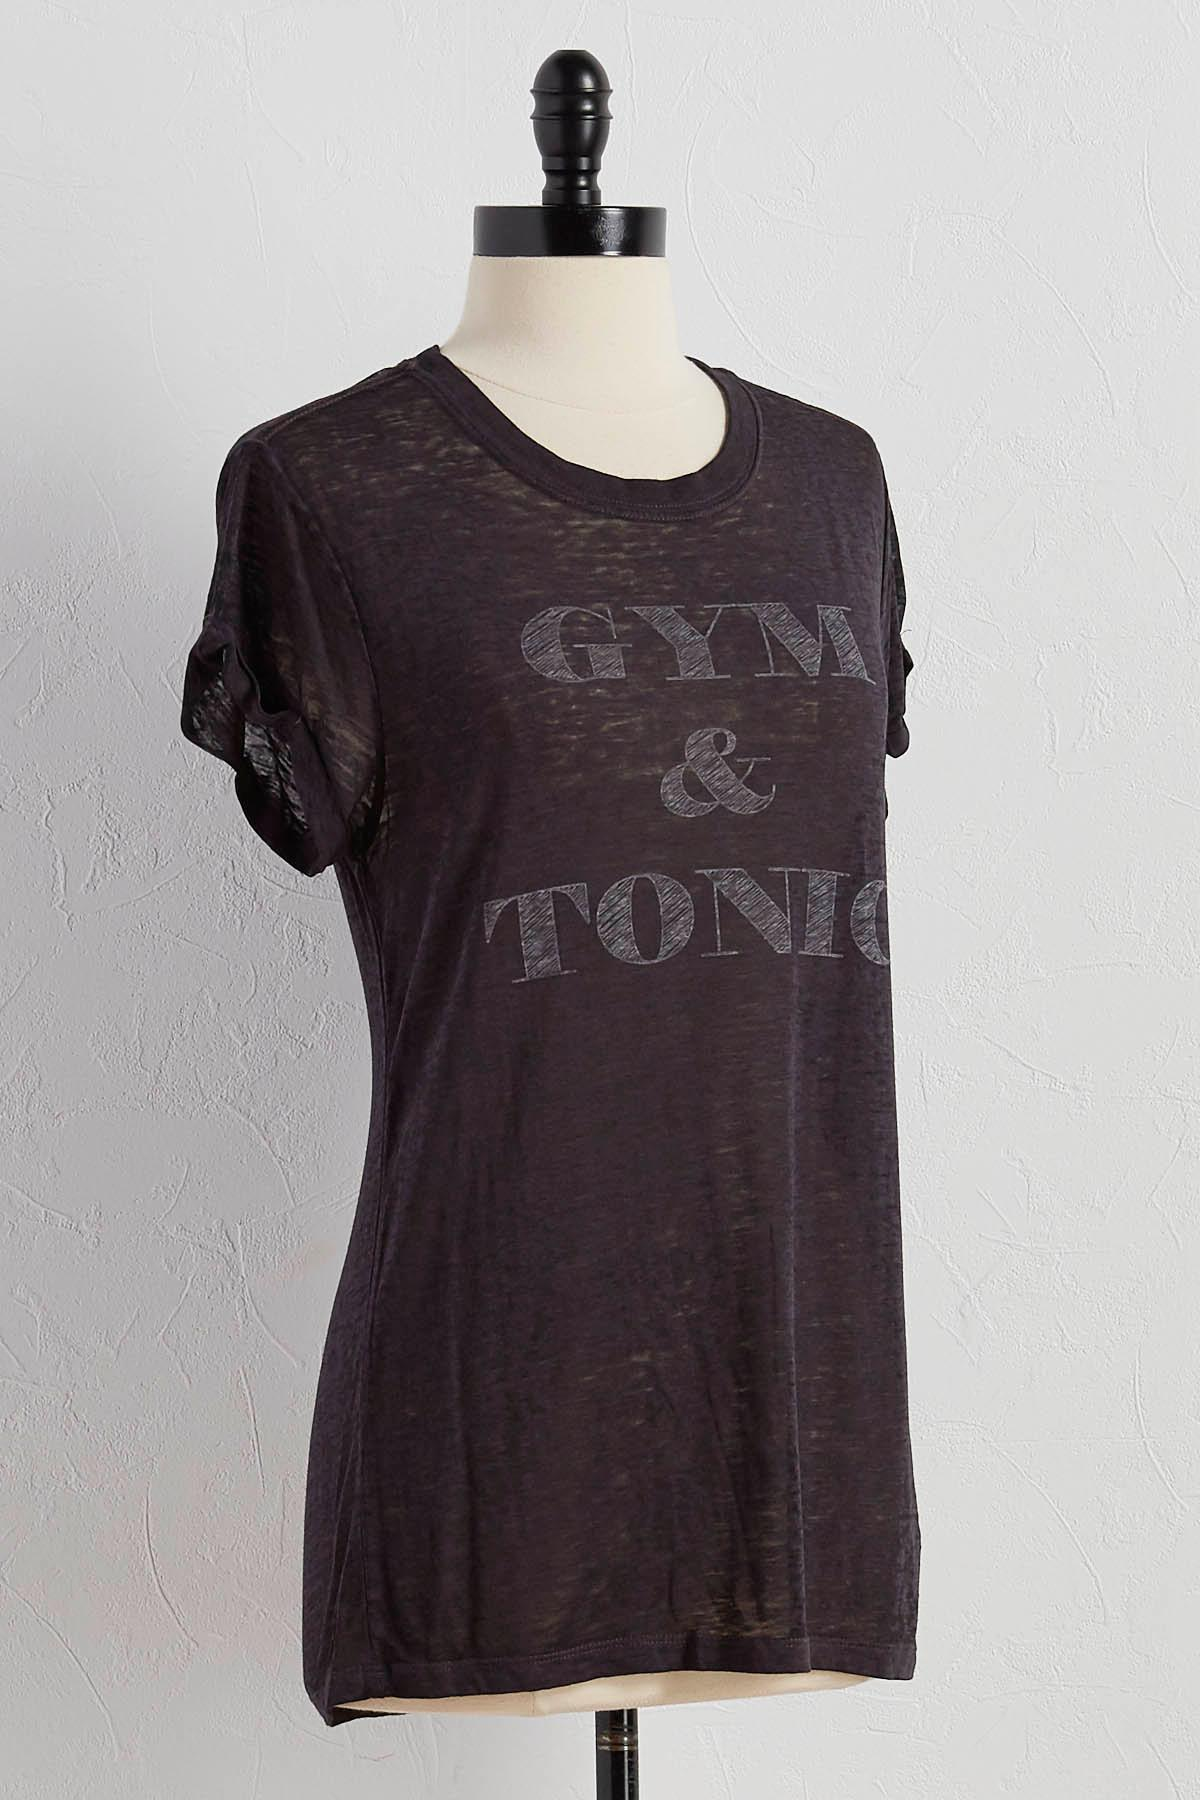 Gym And Tonic Graphic Tee